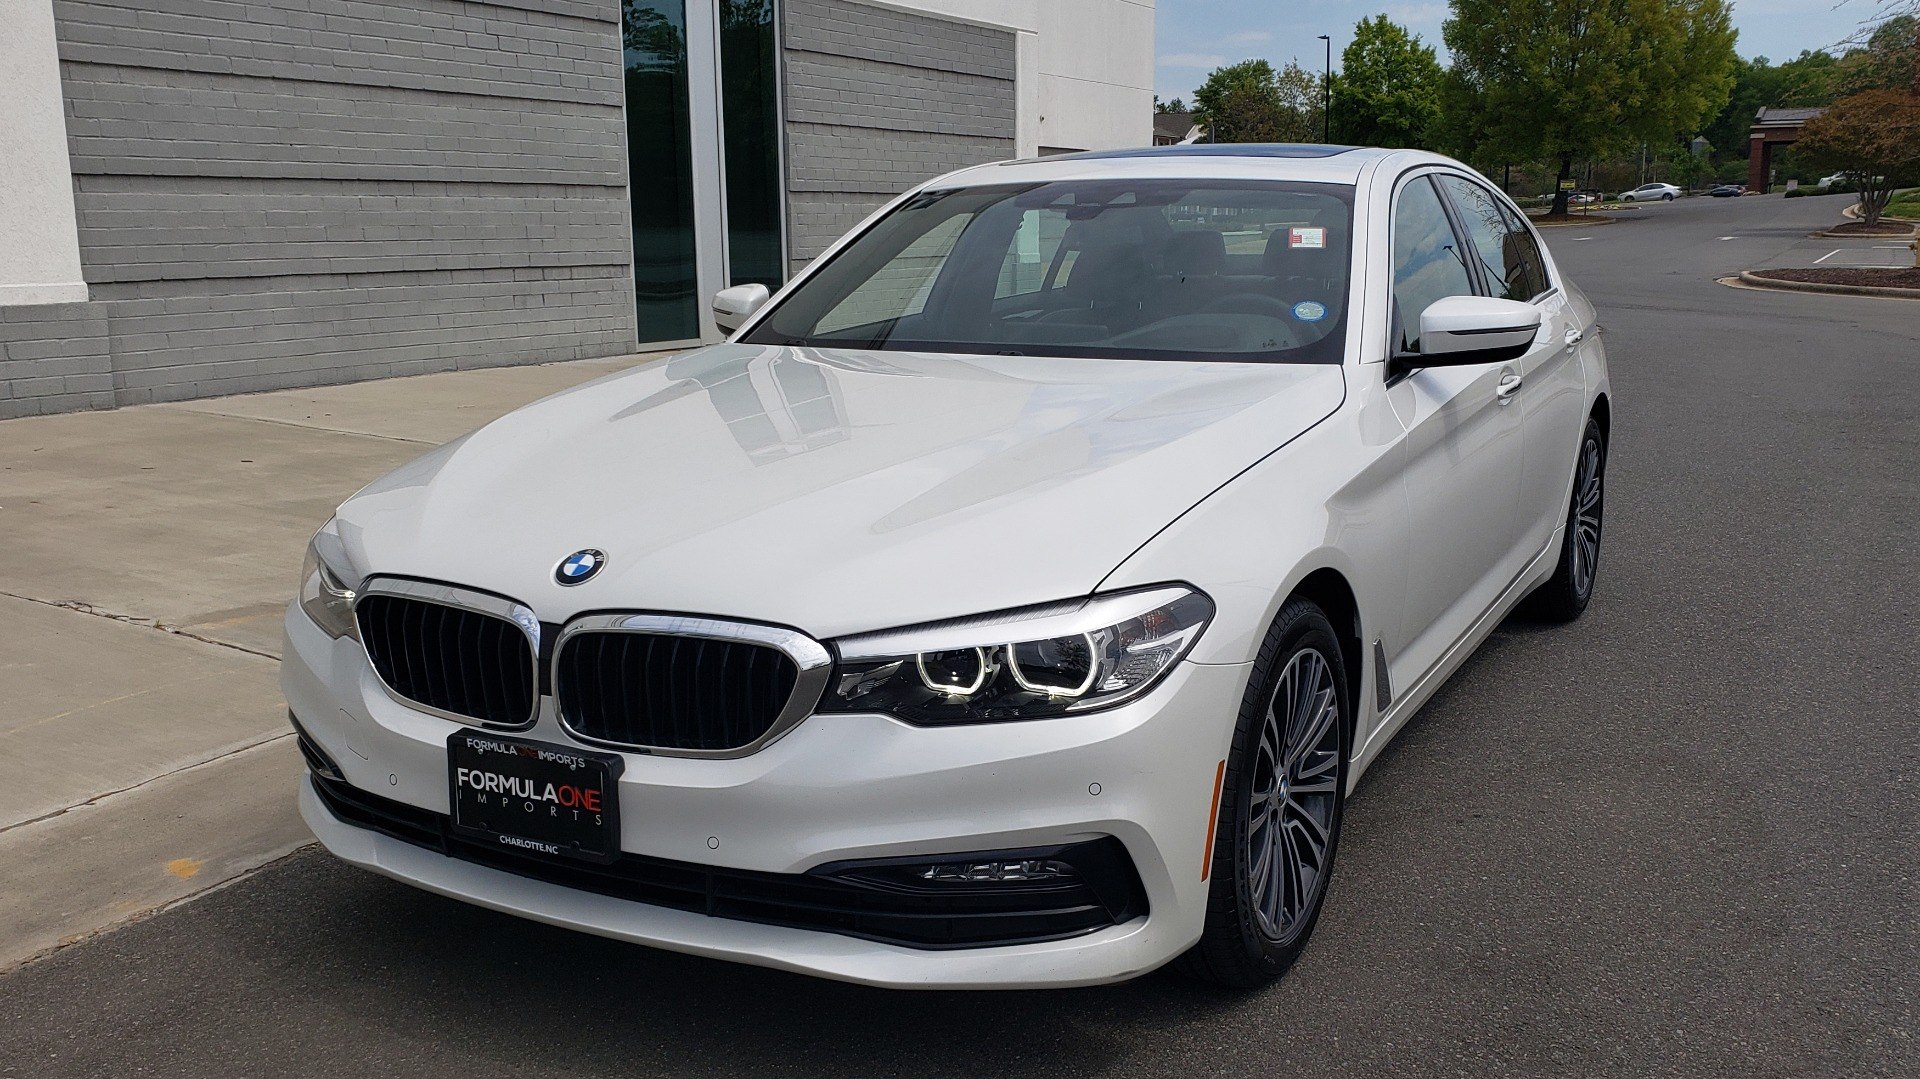 Used 2018 BMW 5 SERIES 530I XDRIVE PREMIUM / NAV / DRVR ASST / PARK ASST / H/K SND for sale $32,795 at Formula Imports in Charlotte NC 28227 2